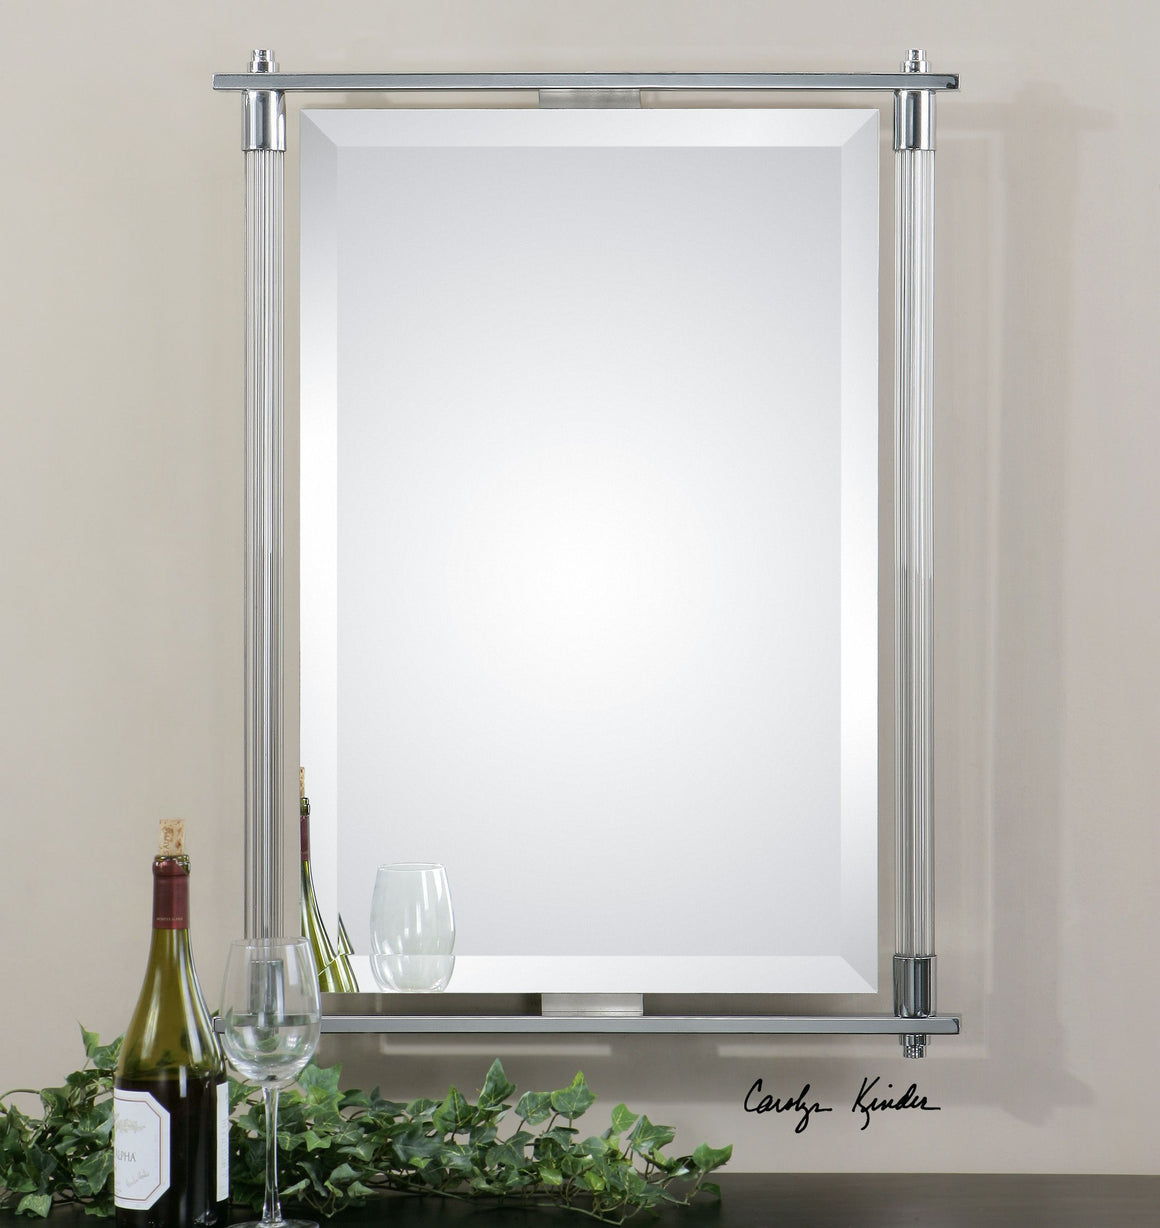 Adara Vanity Mirror - taylor ray decor